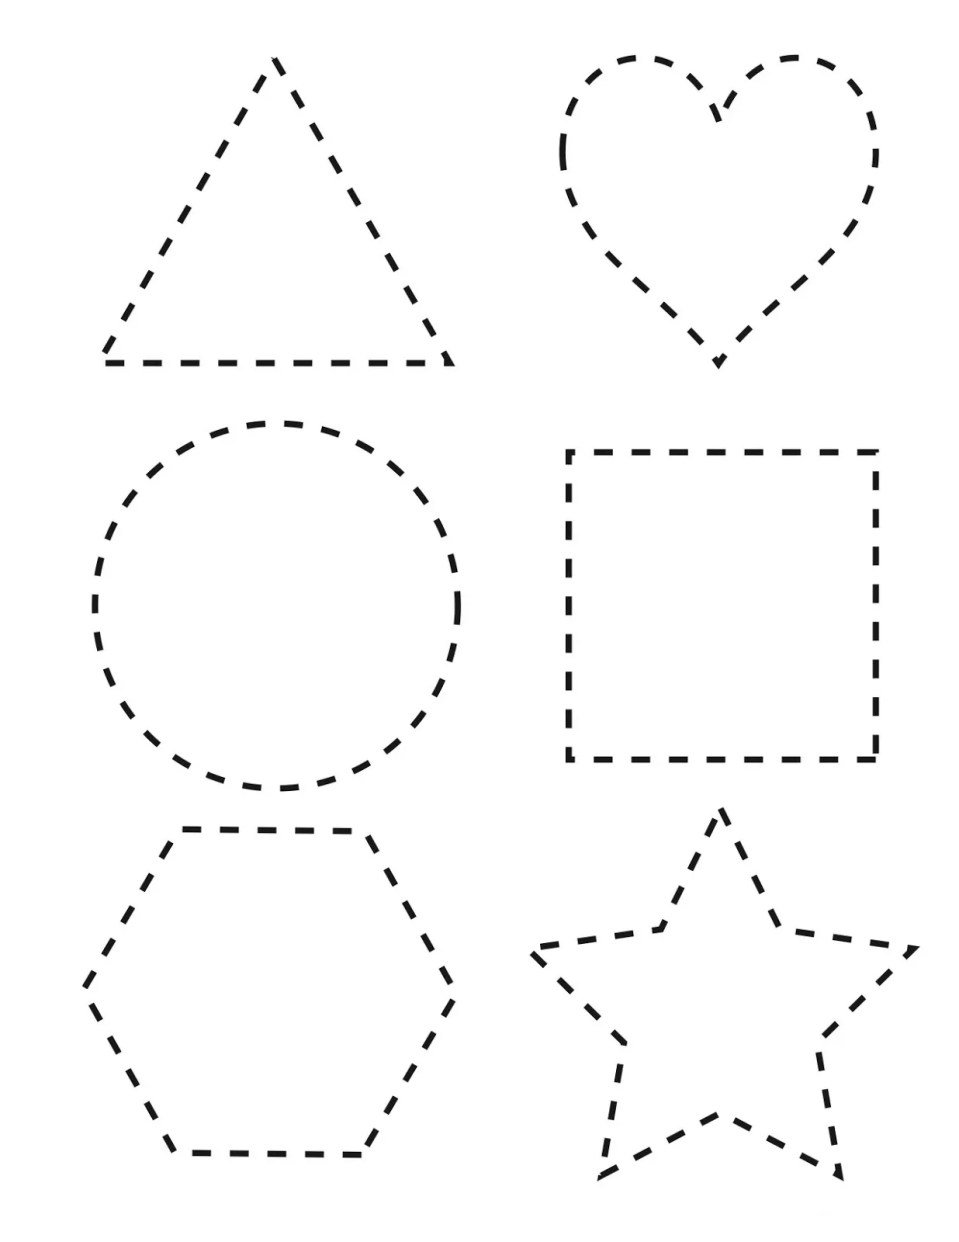 Image Result For Fun Maths Worksheets For 4 Year Olds